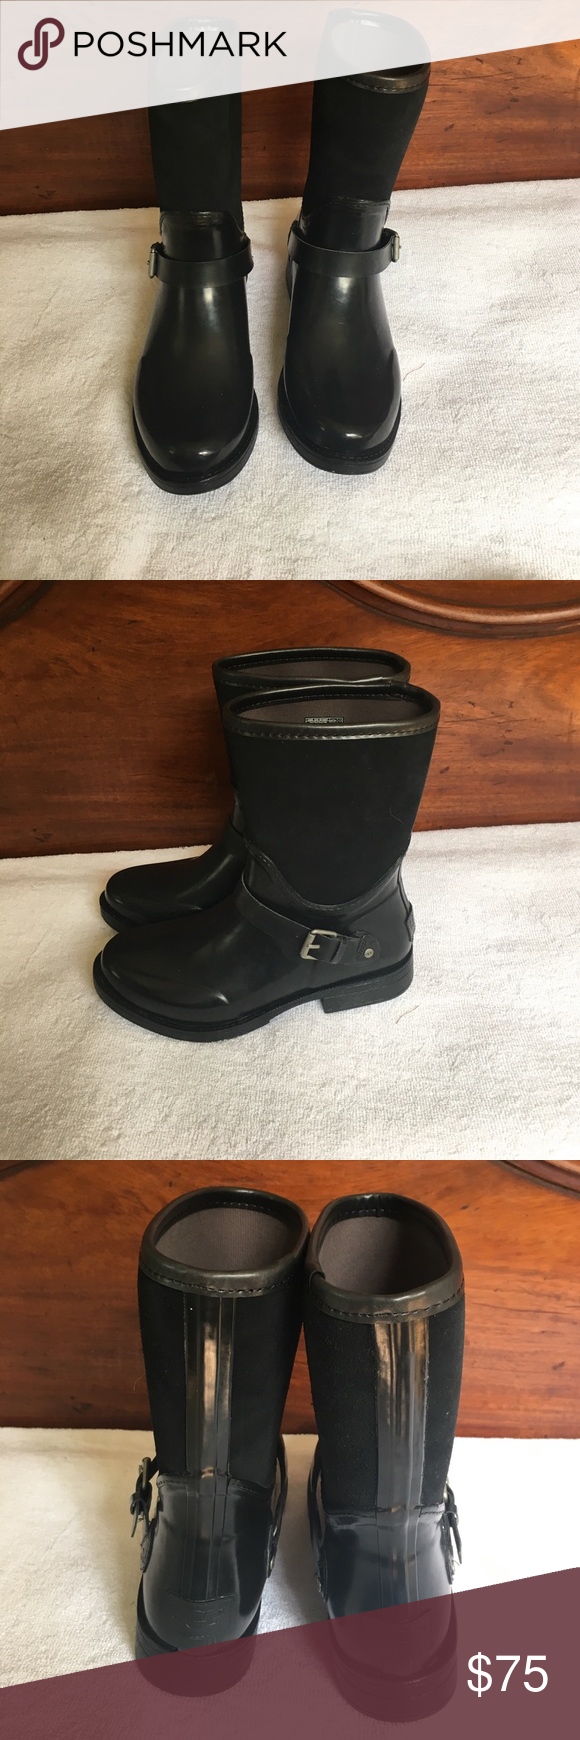 "Women's Sivada Tall Boots NIB, NO trades Rubber and waterproof suede EVA and UGGpure™ wool insole Rubber outsole Waterproof construction 8.5"" shaft height. No trades *** UGG Shoes Winter & Rain Boots"